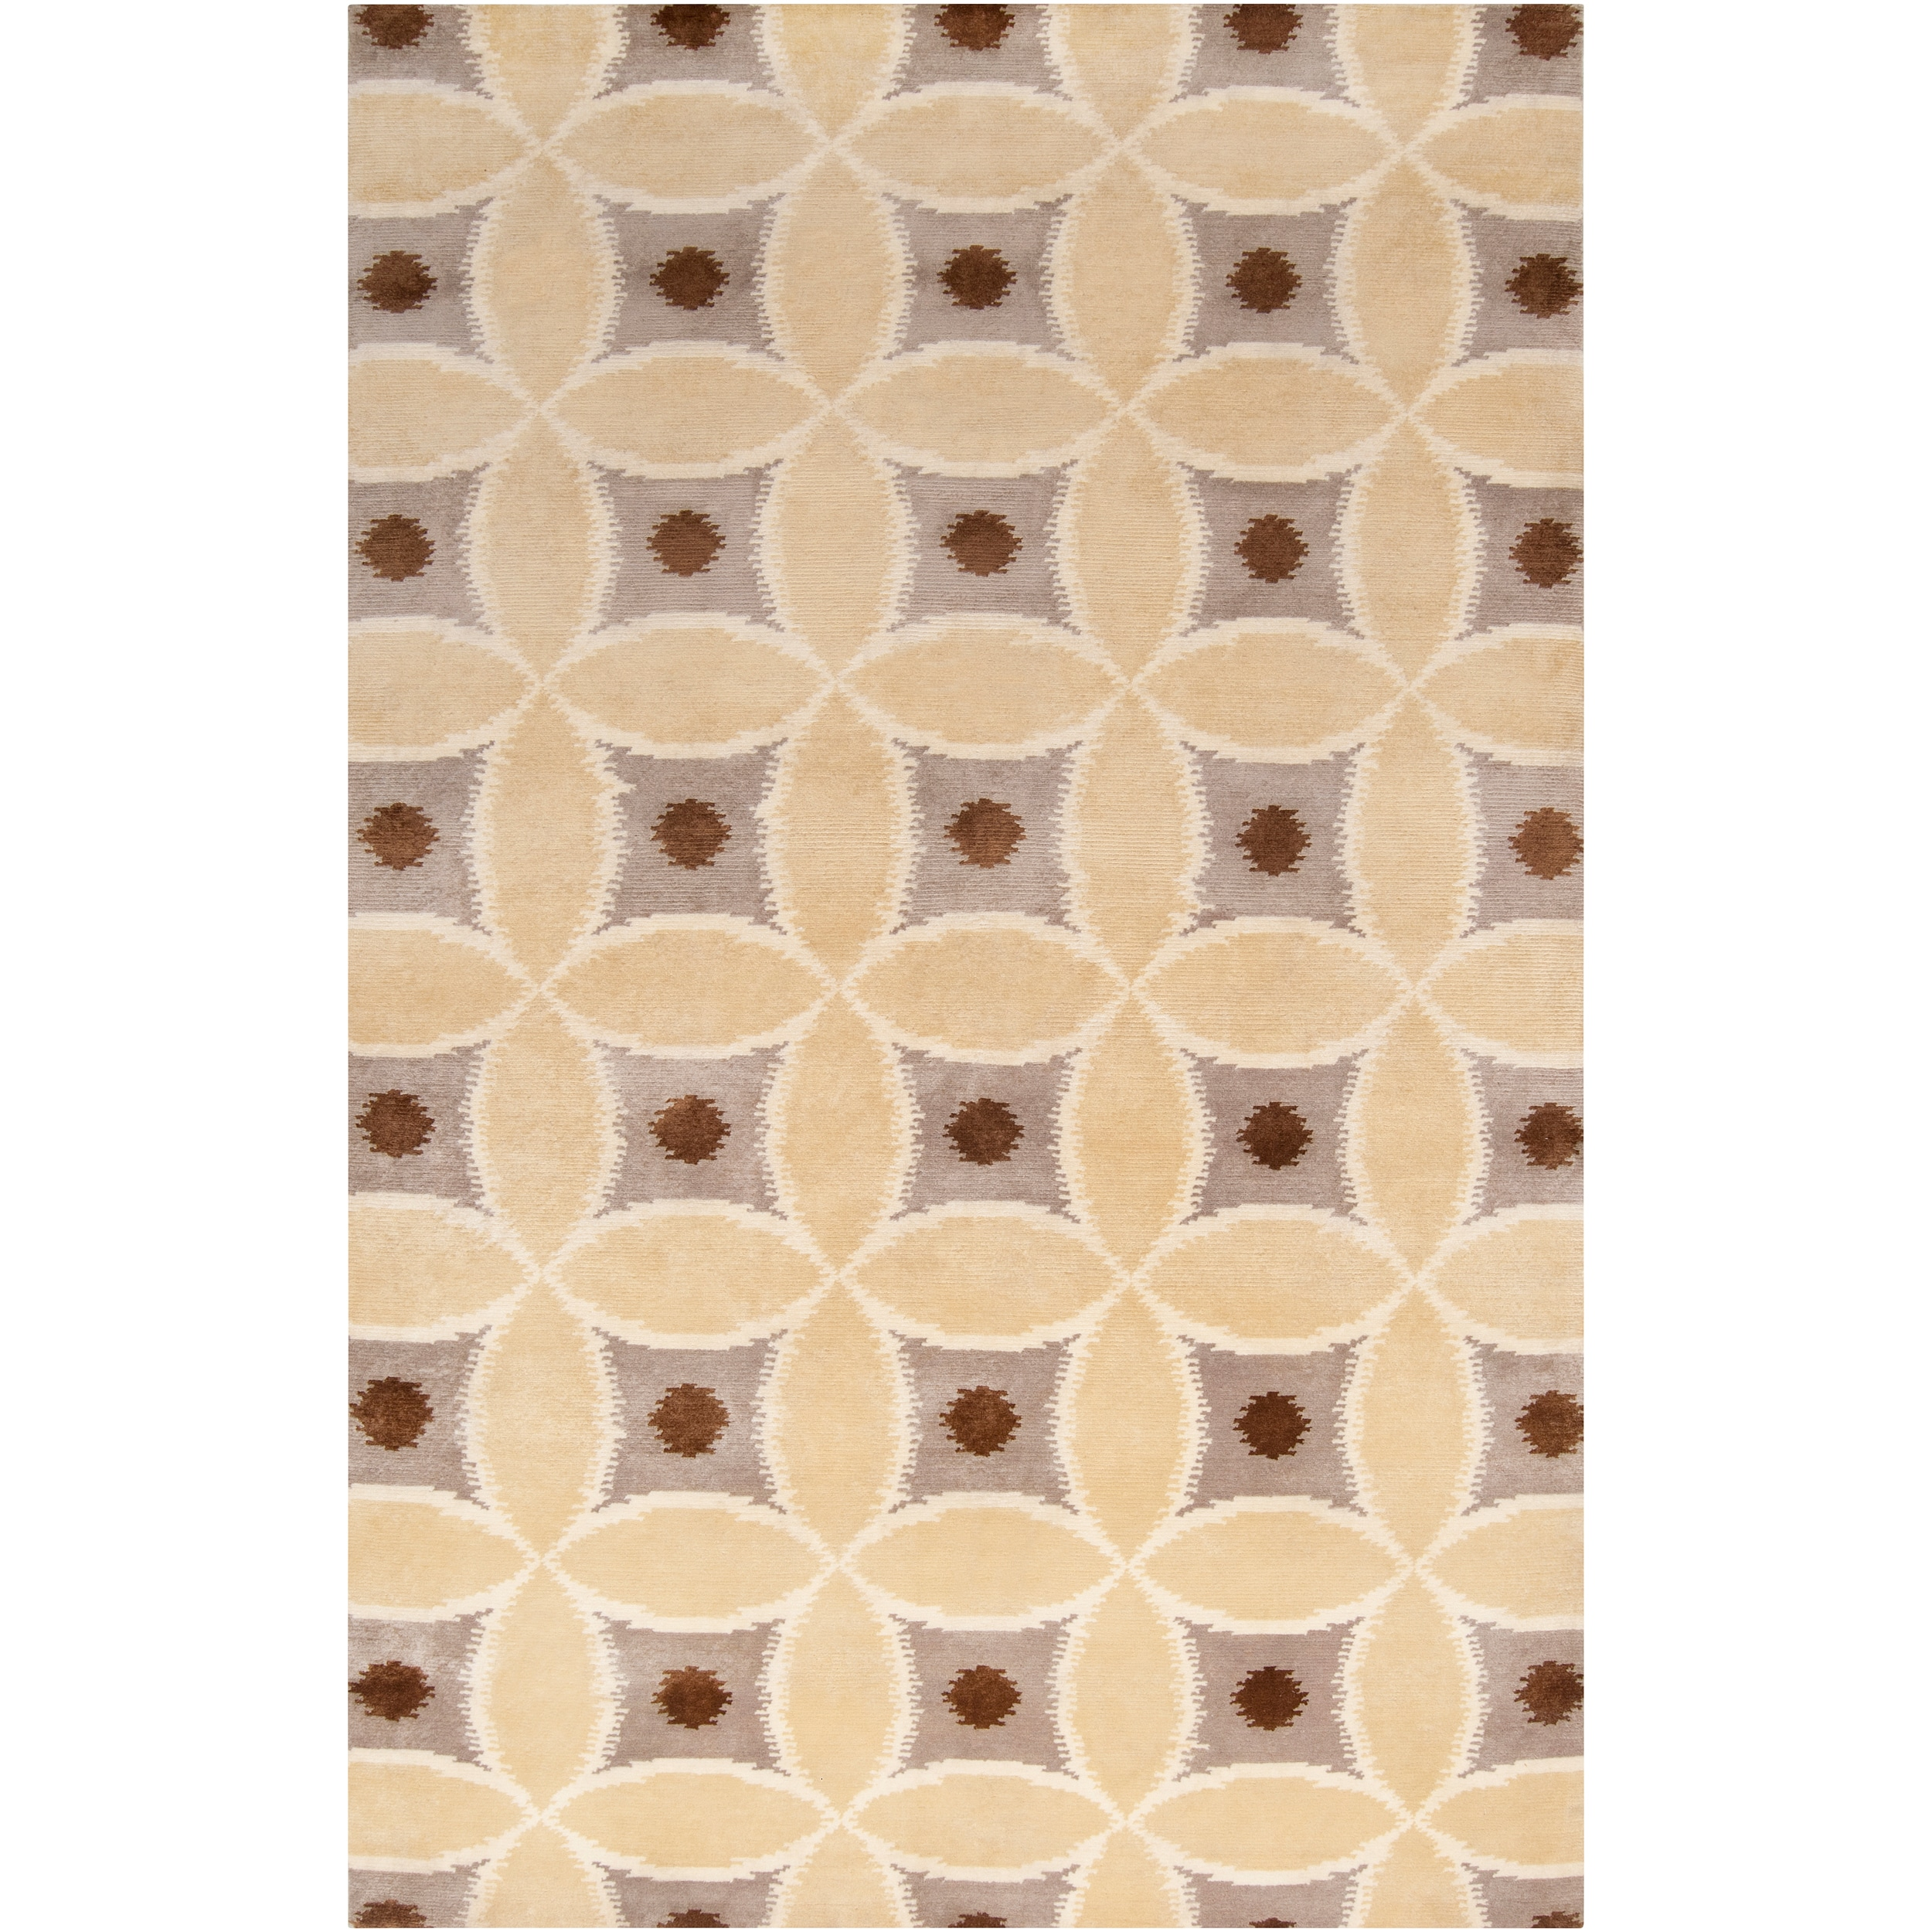 Hand-knotted 'Diego Martin' Brown Wool Area Rug (8' x 11')